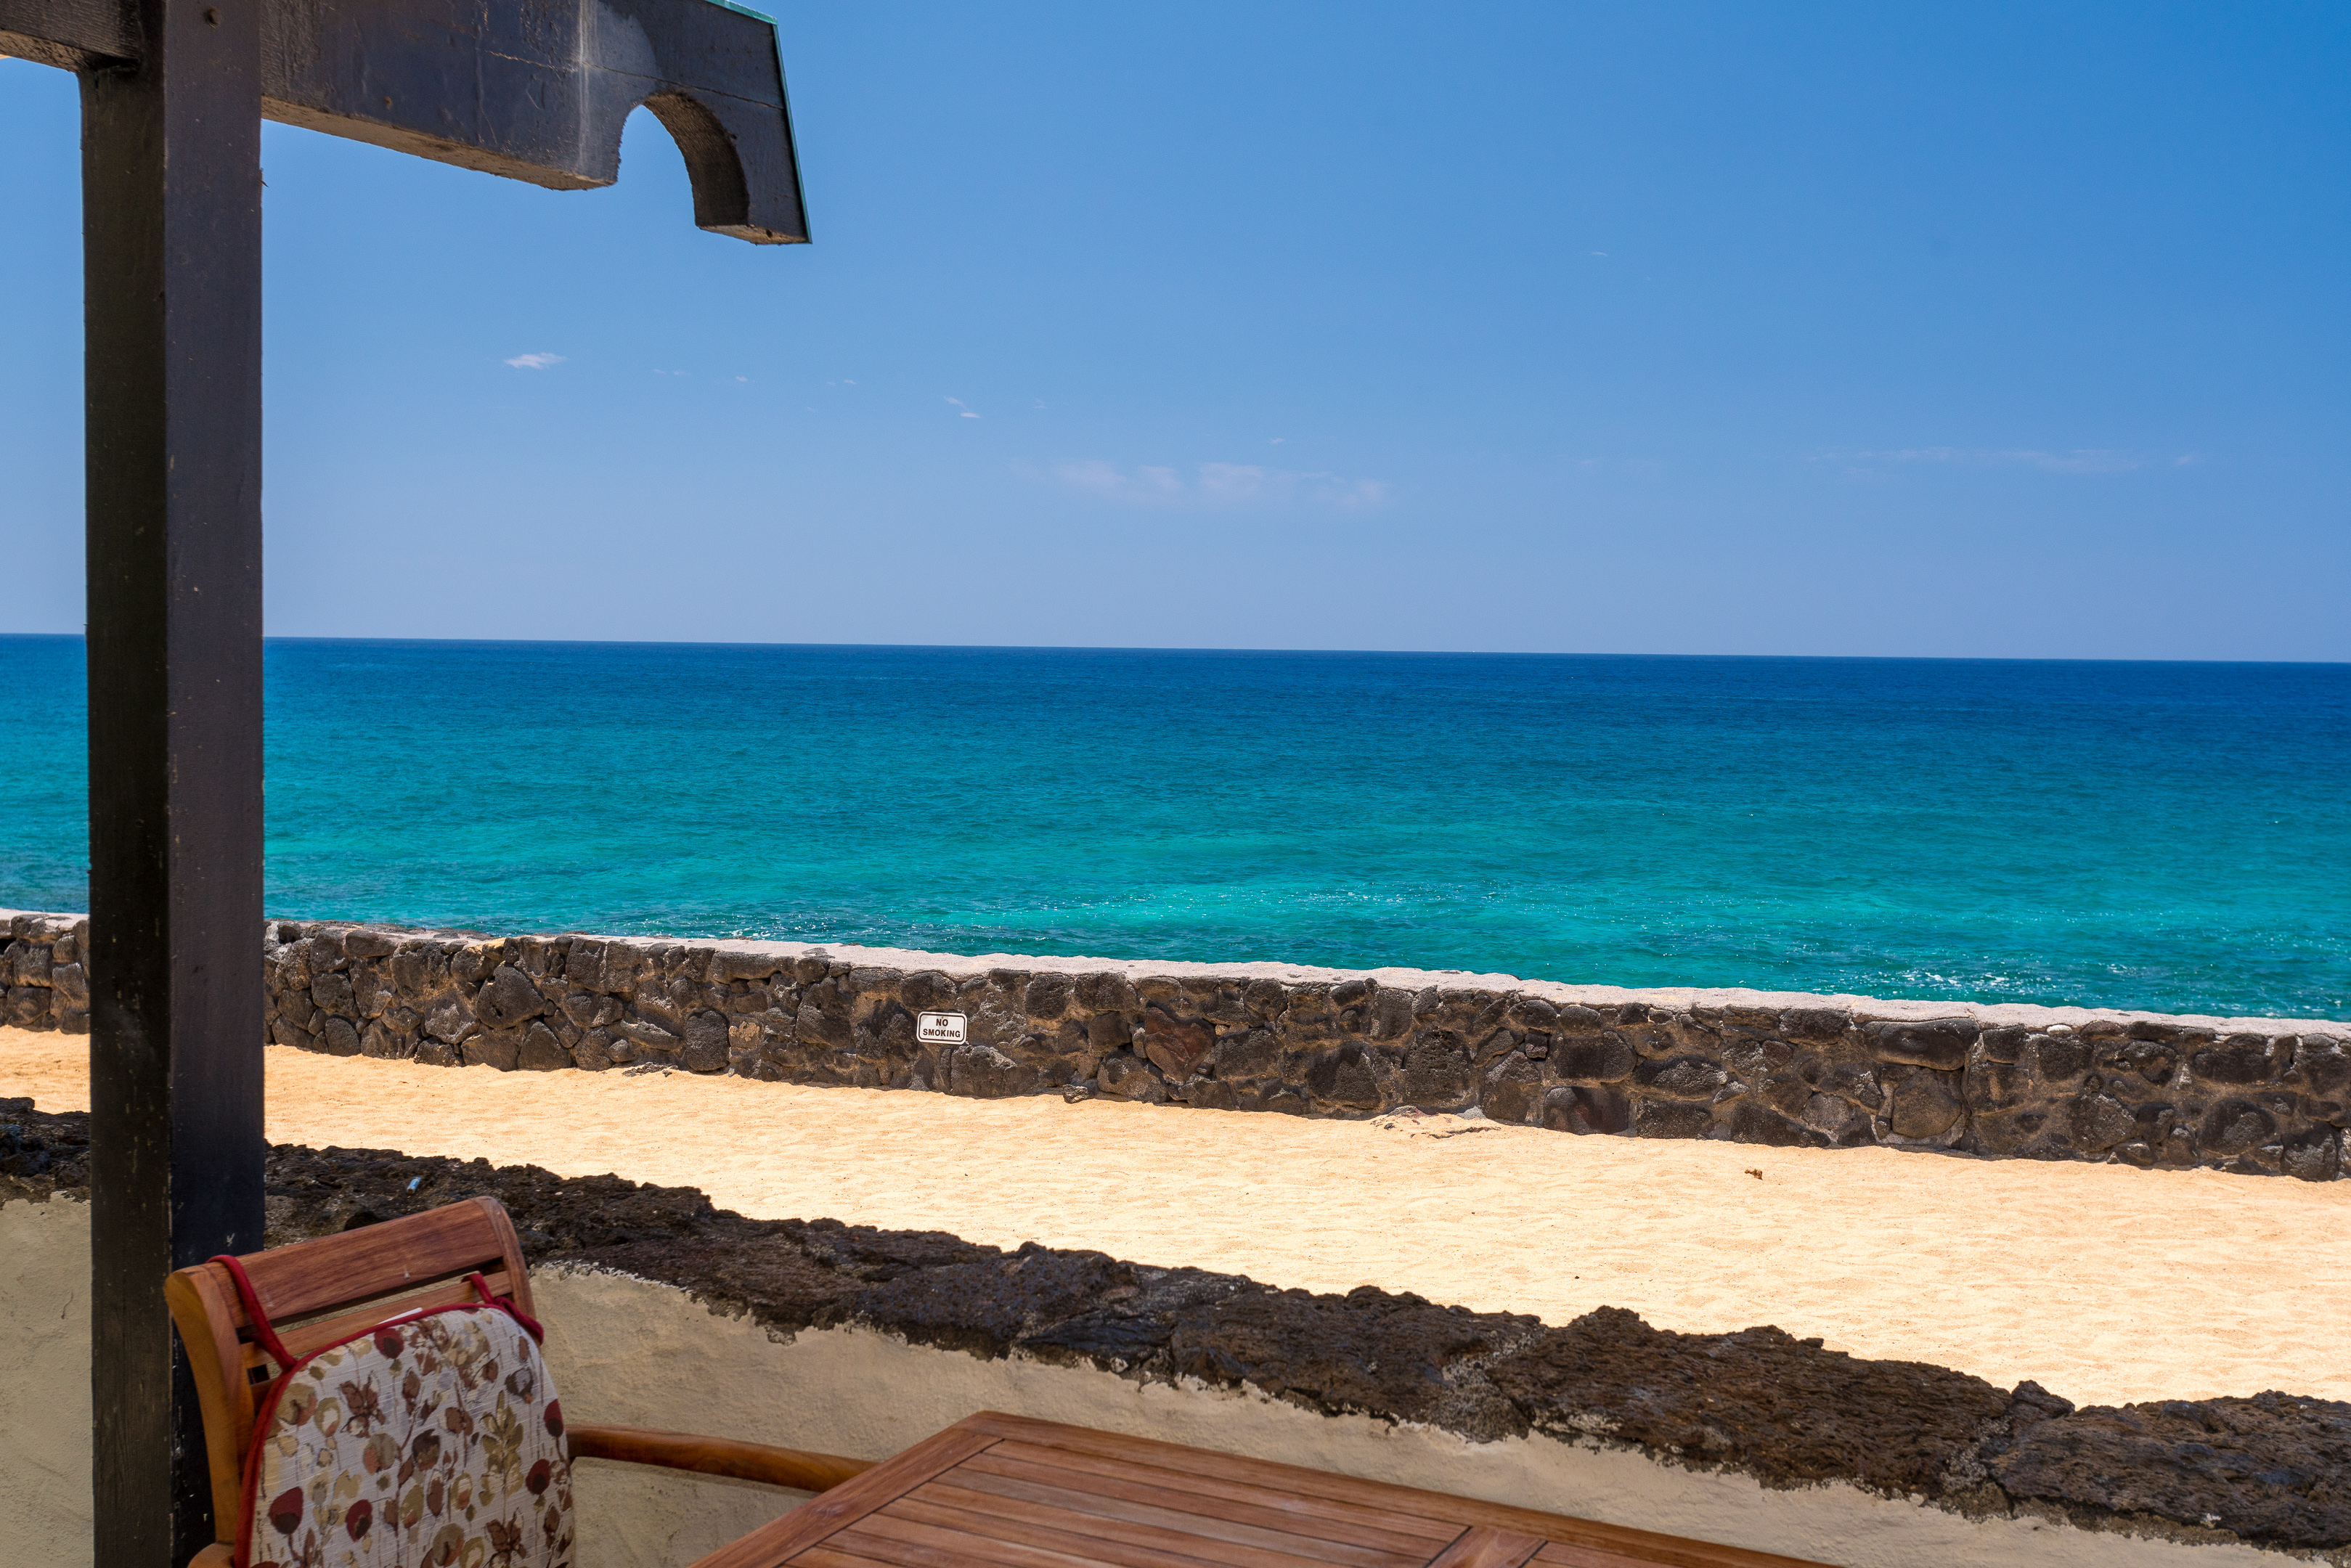 Your oceanfront condo has a lovely sandy area to lounge on between you and the ocean. Very unique to the Big Island!